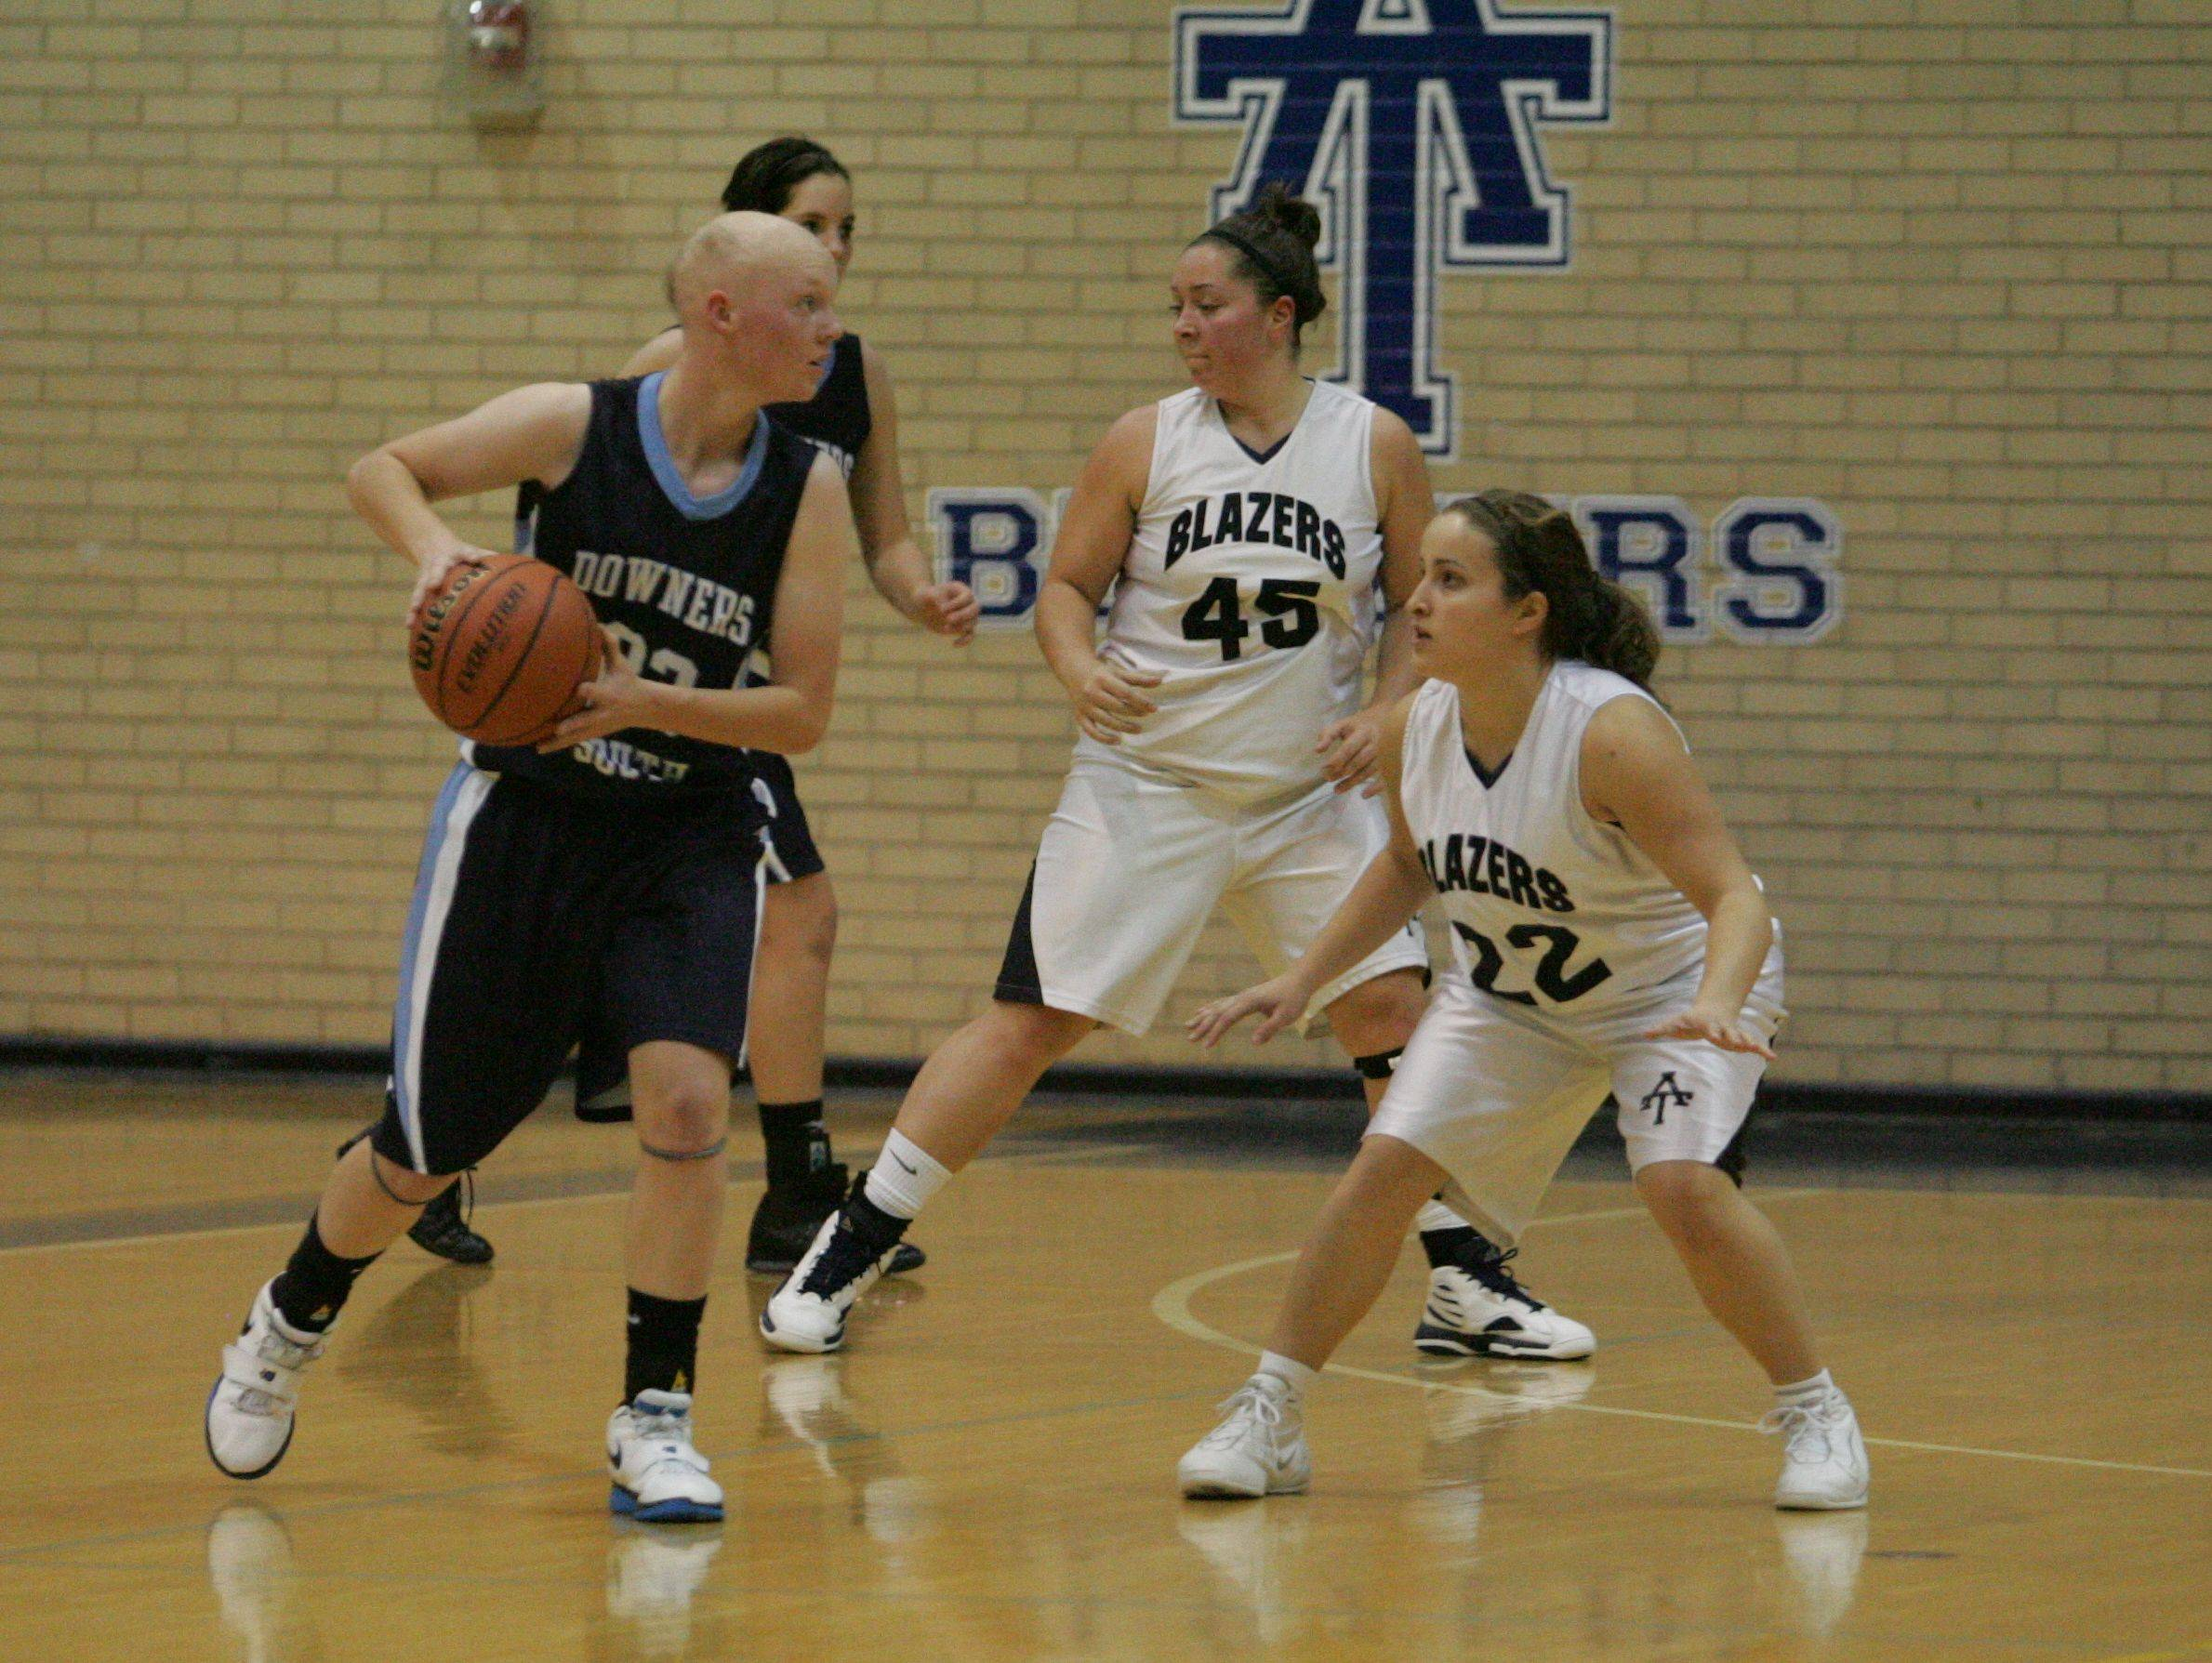 Girls basketball. Downers Grove South at Addison Trail in Addison.